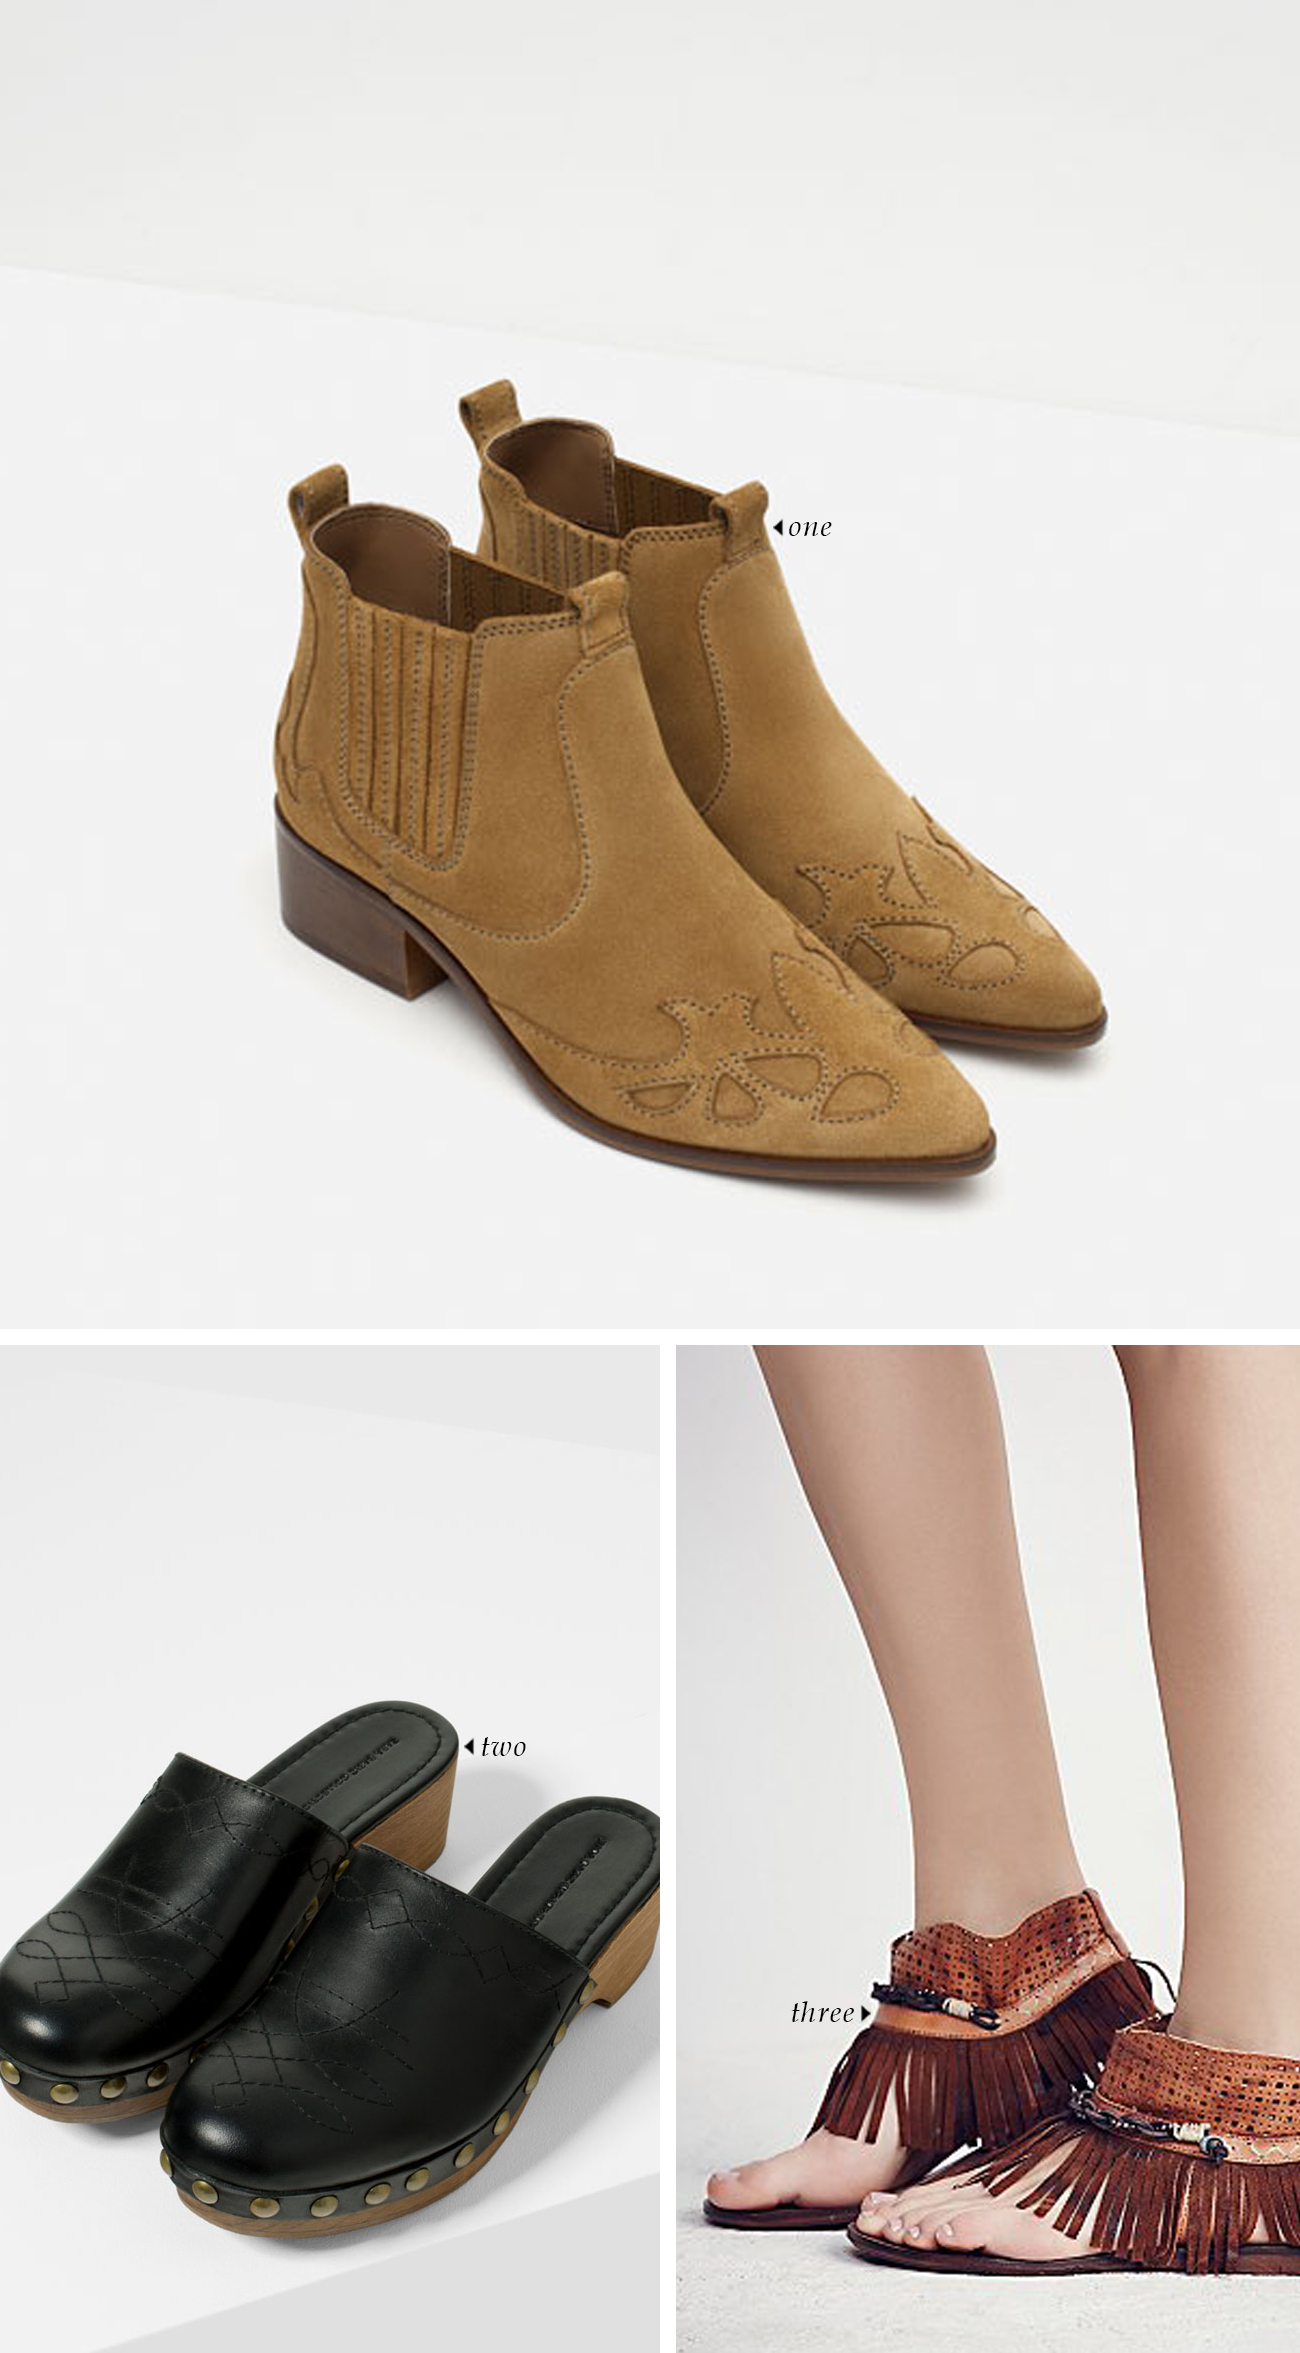 spring summer 2016 shoe trends | Western